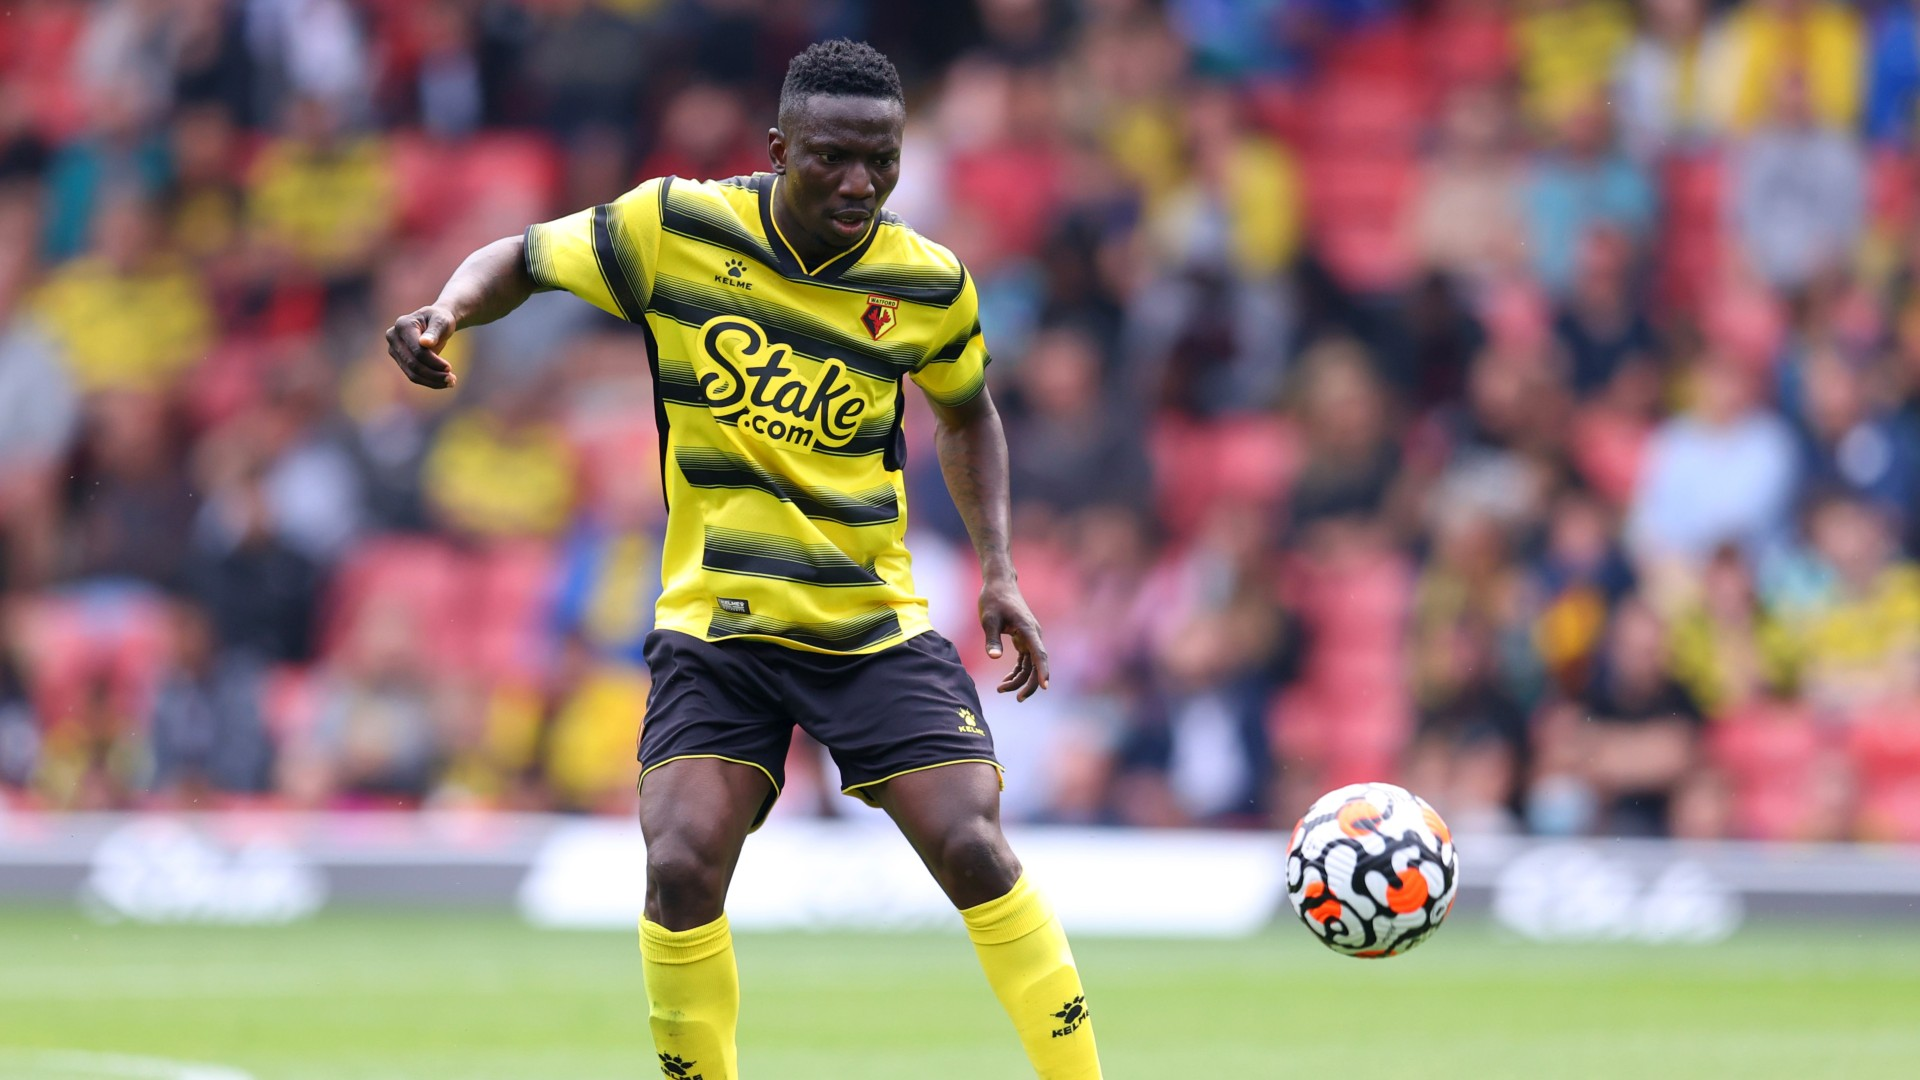 Carabao Cup: Watford's Etebo ruled out of Stoke City clash